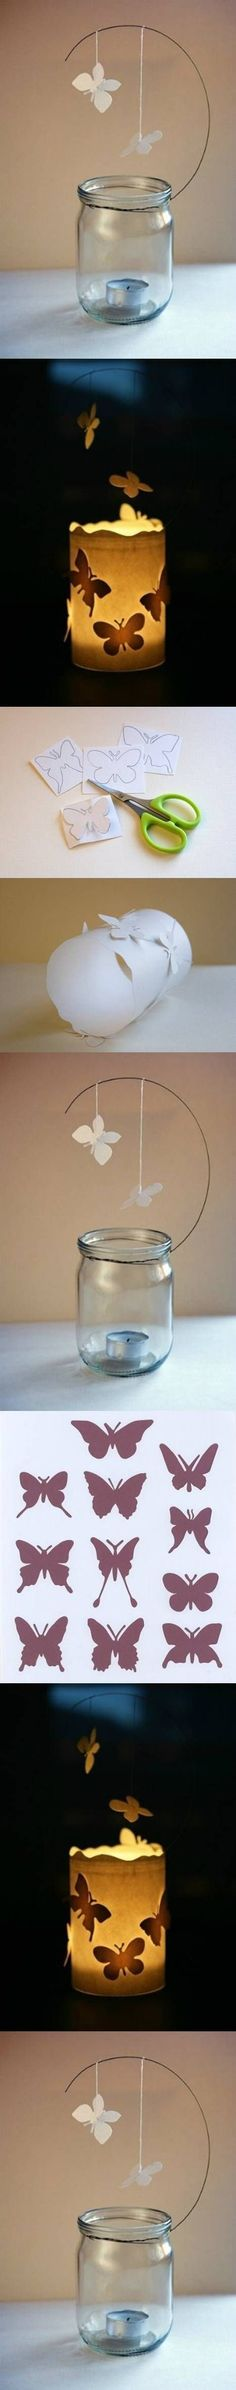 25-Beautiful-Creative-Ways-of-Repurposing-Mason-Jars-homesthetics-15.jpg (467×4731)